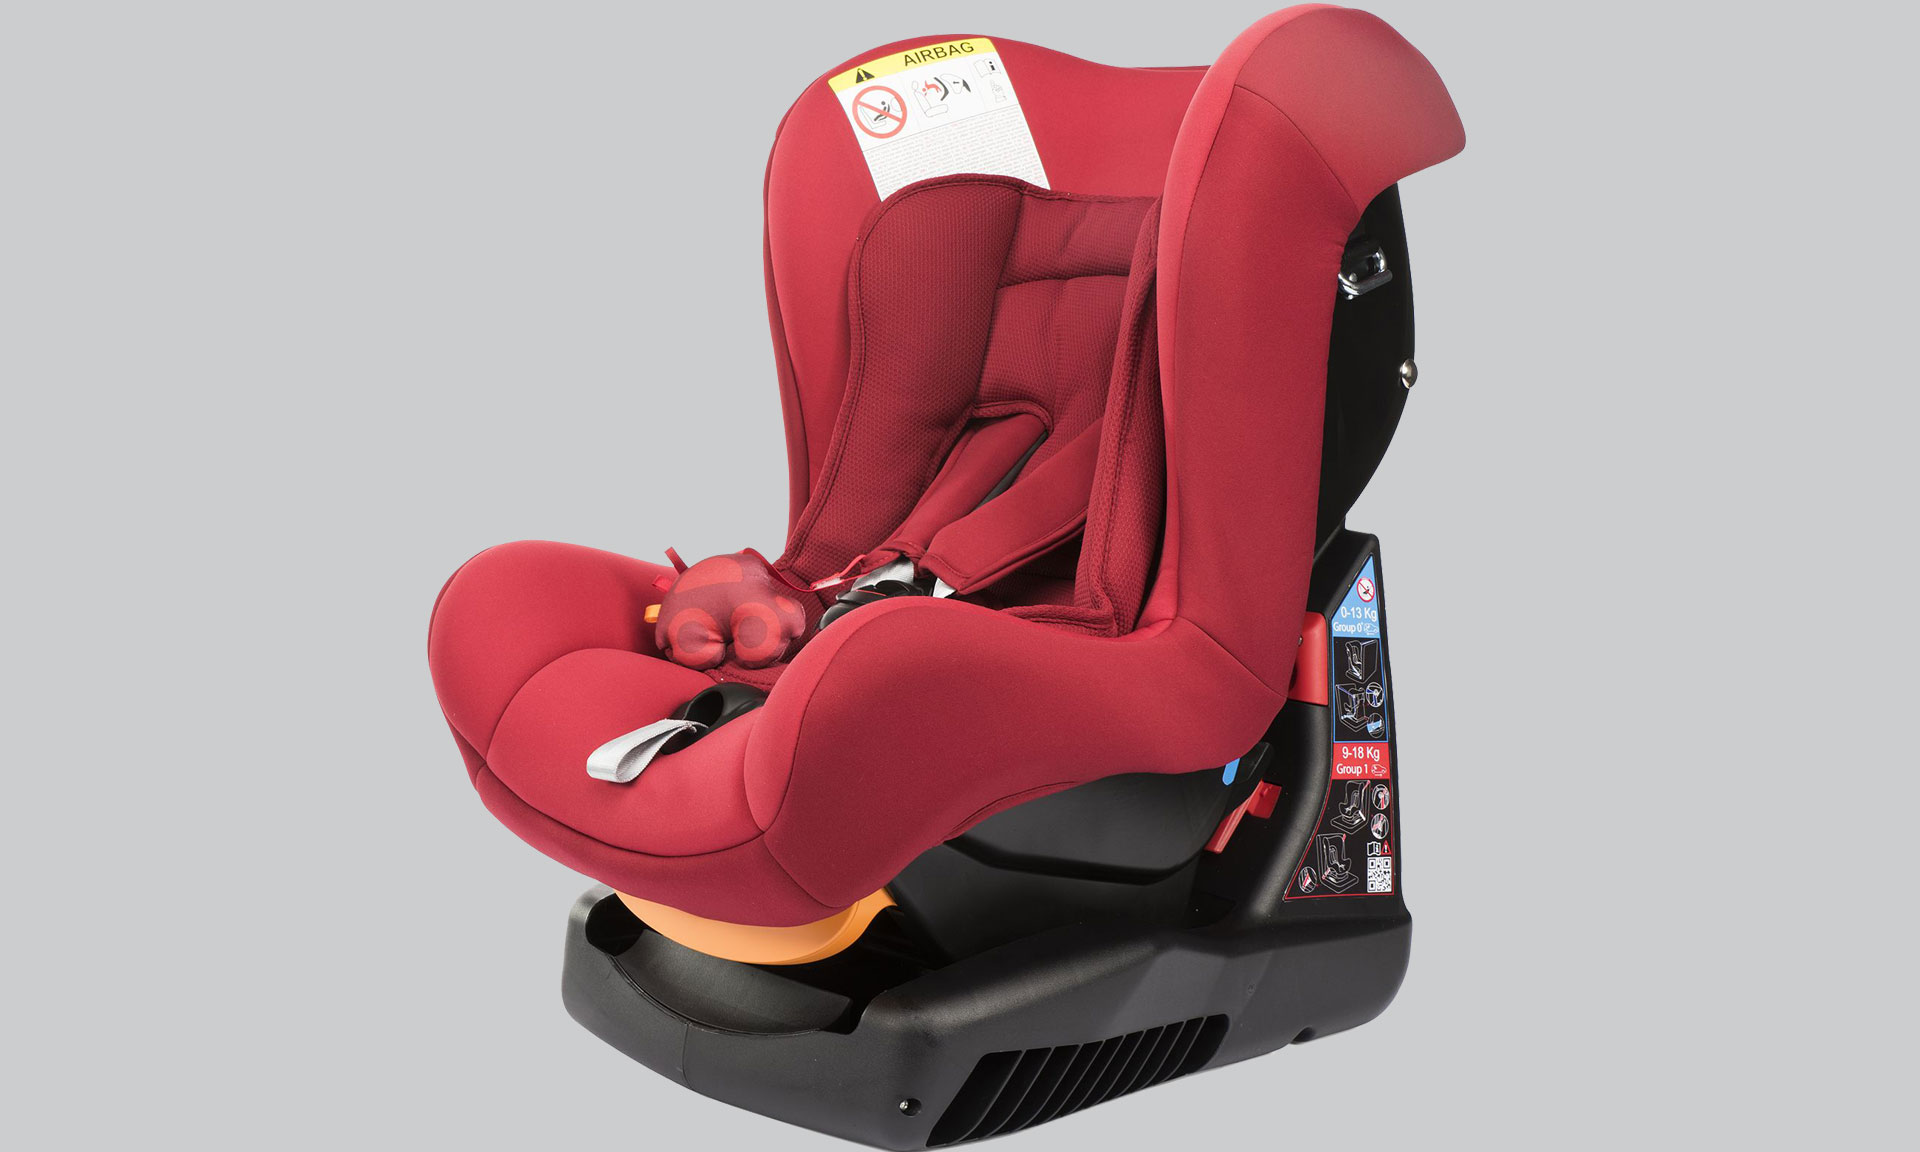 safety 1st high chair recall real leather chairs alert chicco baby car seat  which news